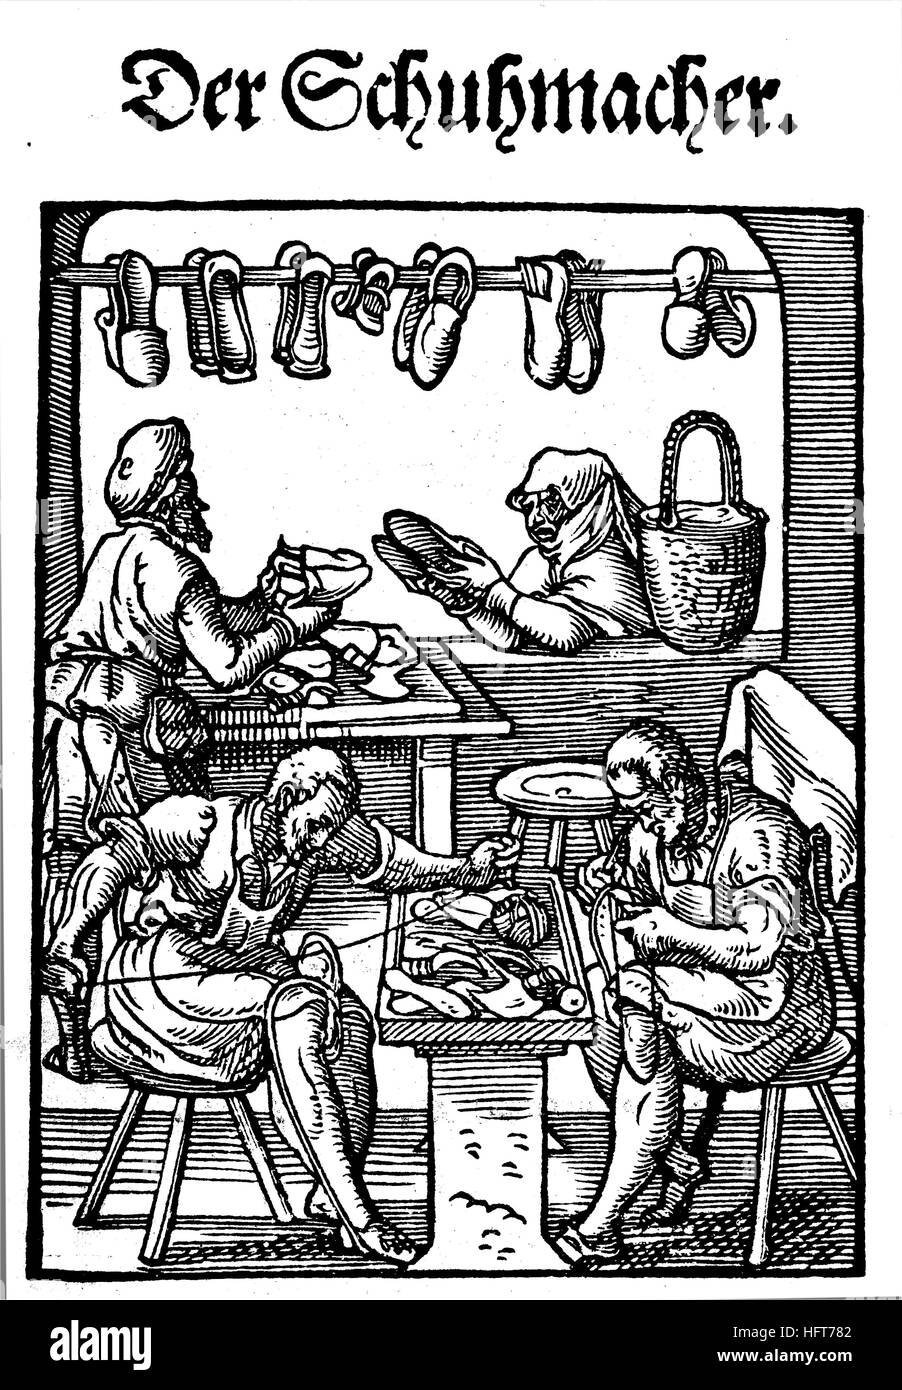 The shoemaker, Der Schuhmacher, Woodcut from the, Das Saendebuch, a famous series of woodcuts of the trades by Amman, - Stock Image